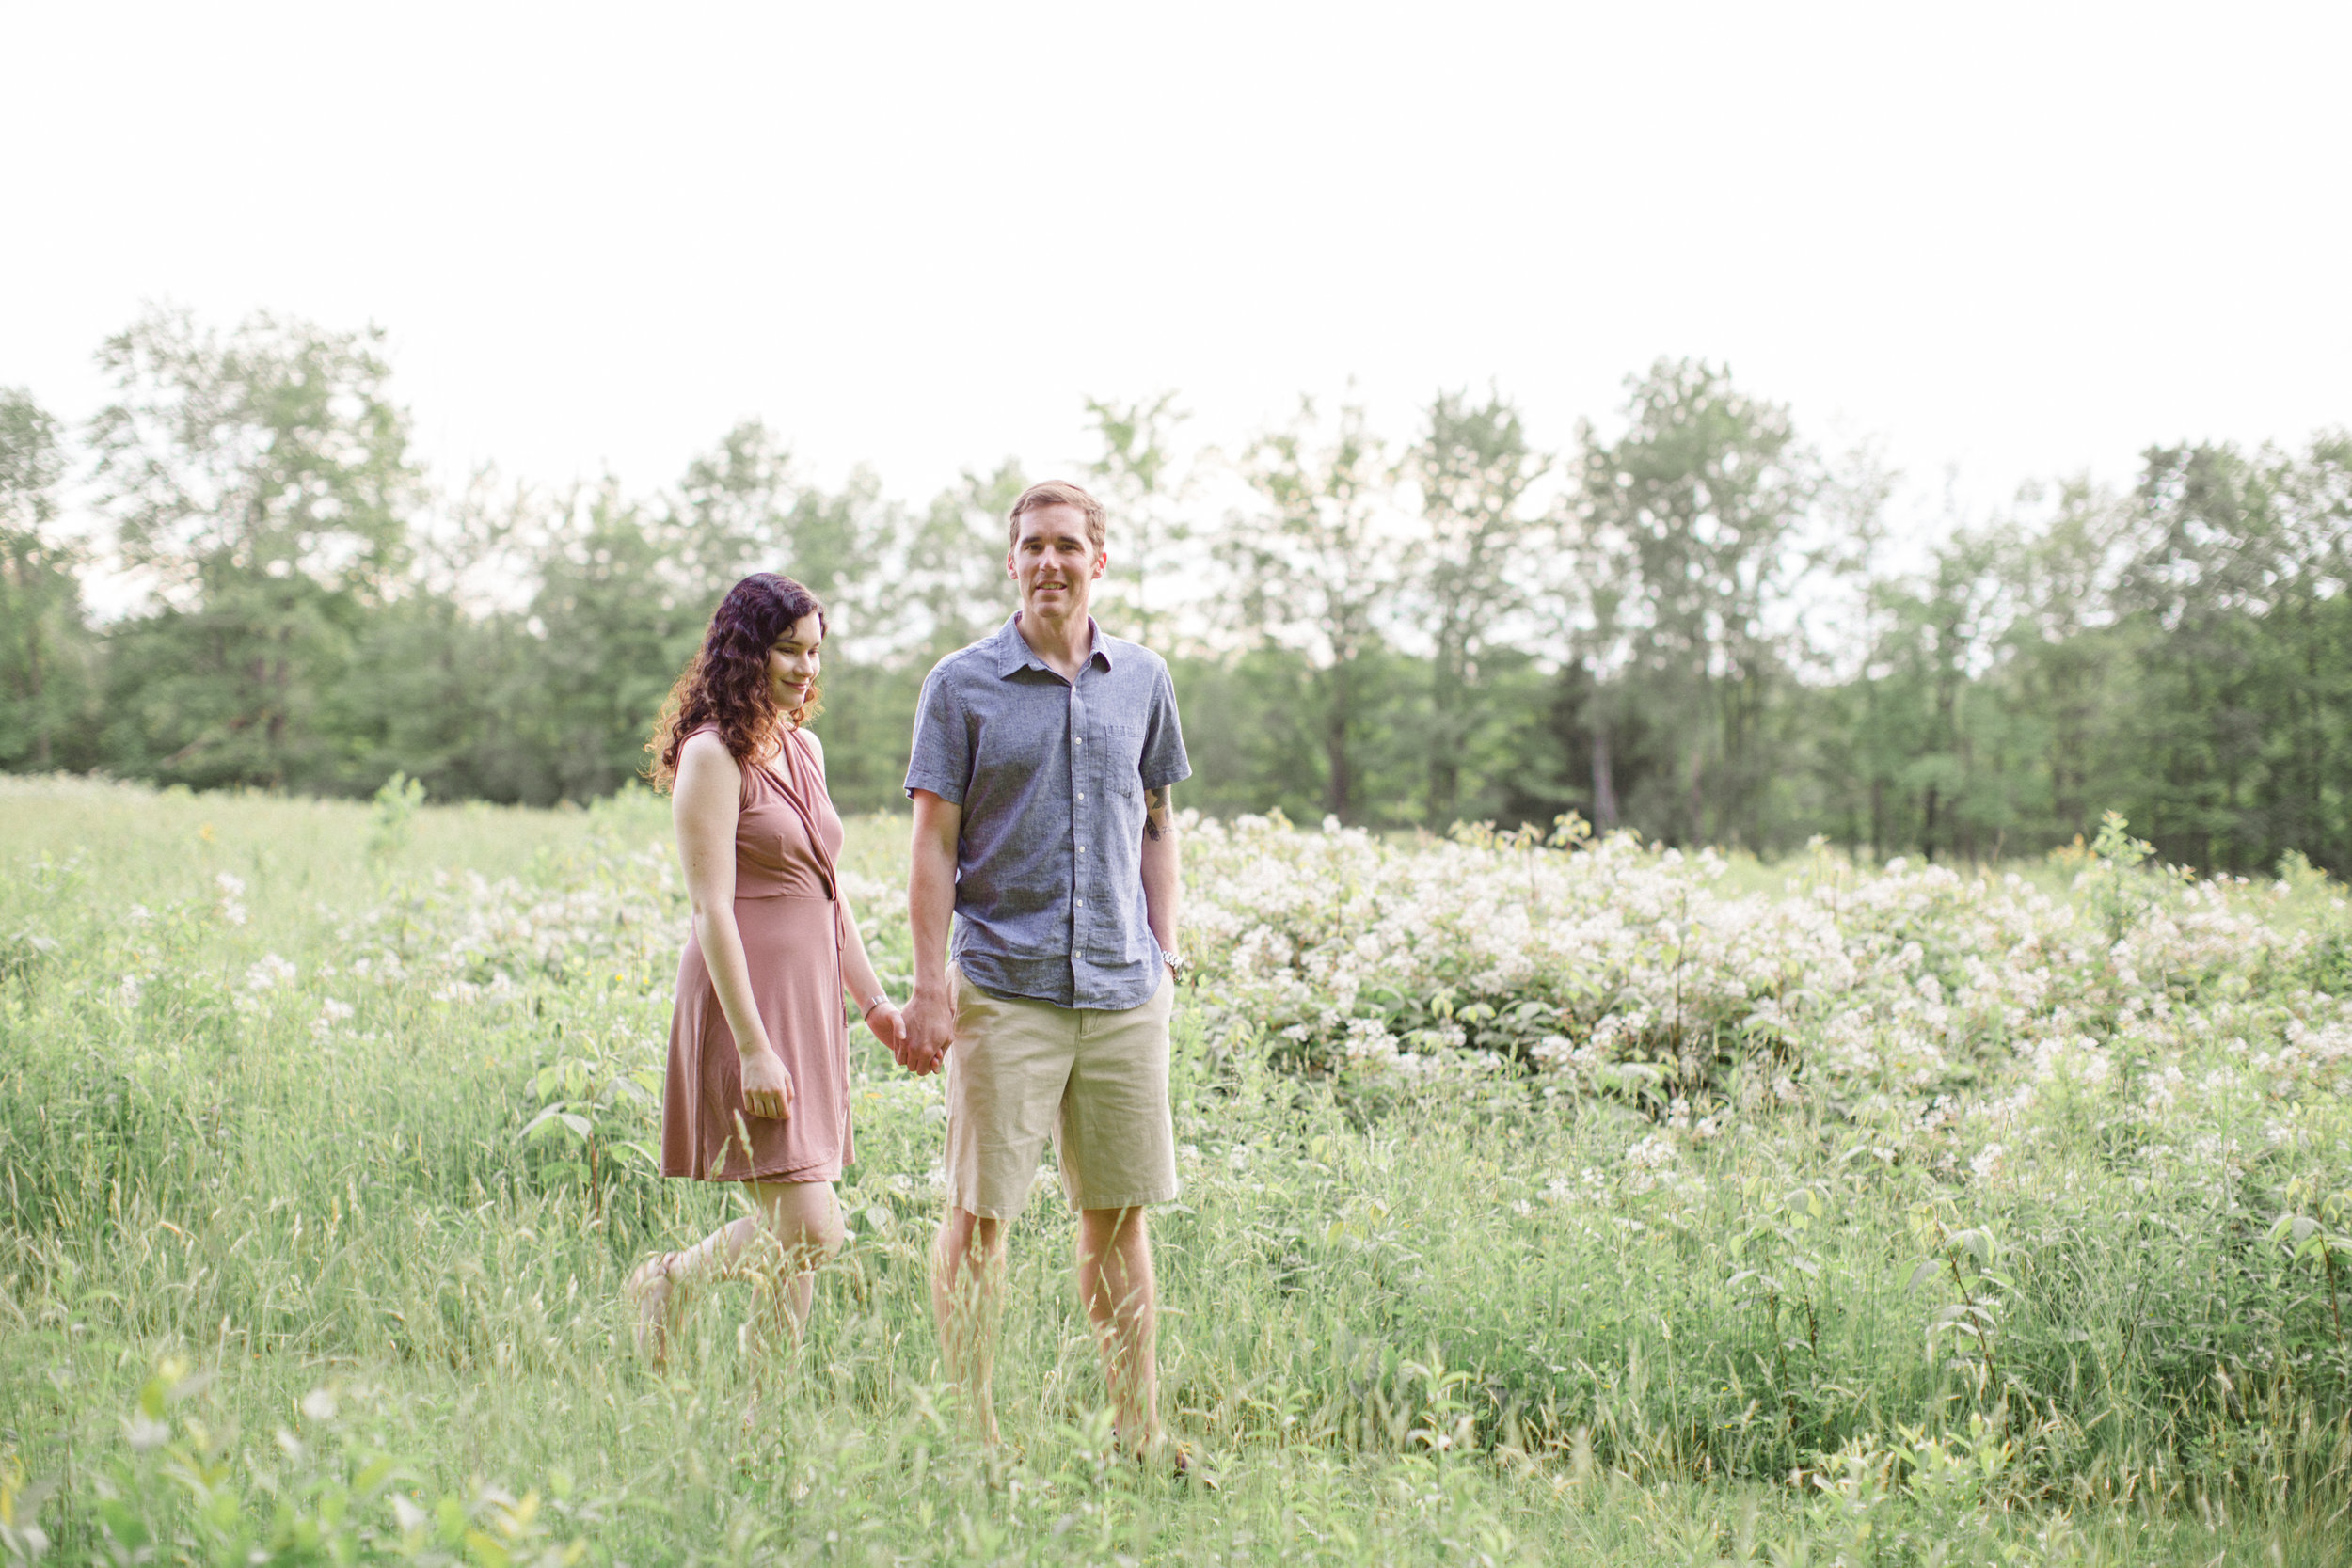 Moscow PA Engagement Session Photos_JDP-38.jpg